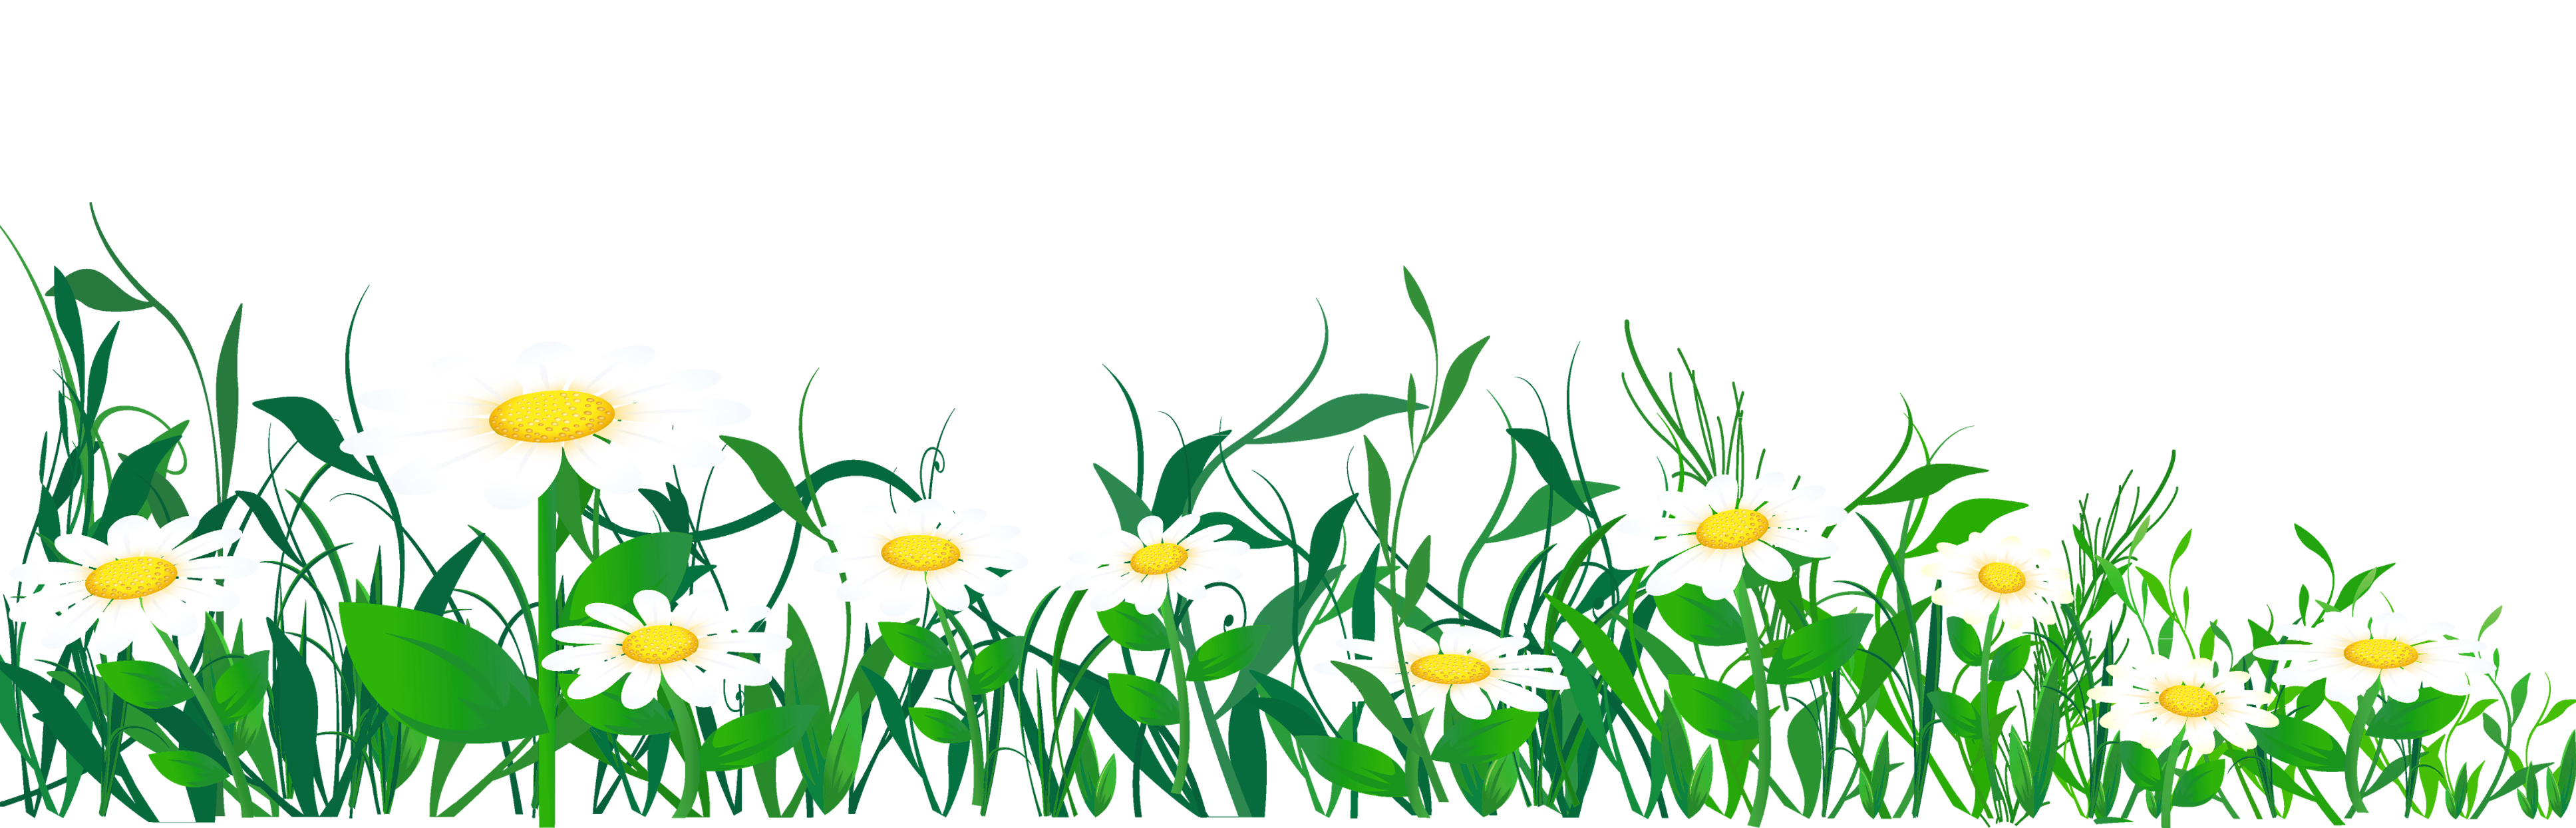 Daisies and Grass Clip Art.